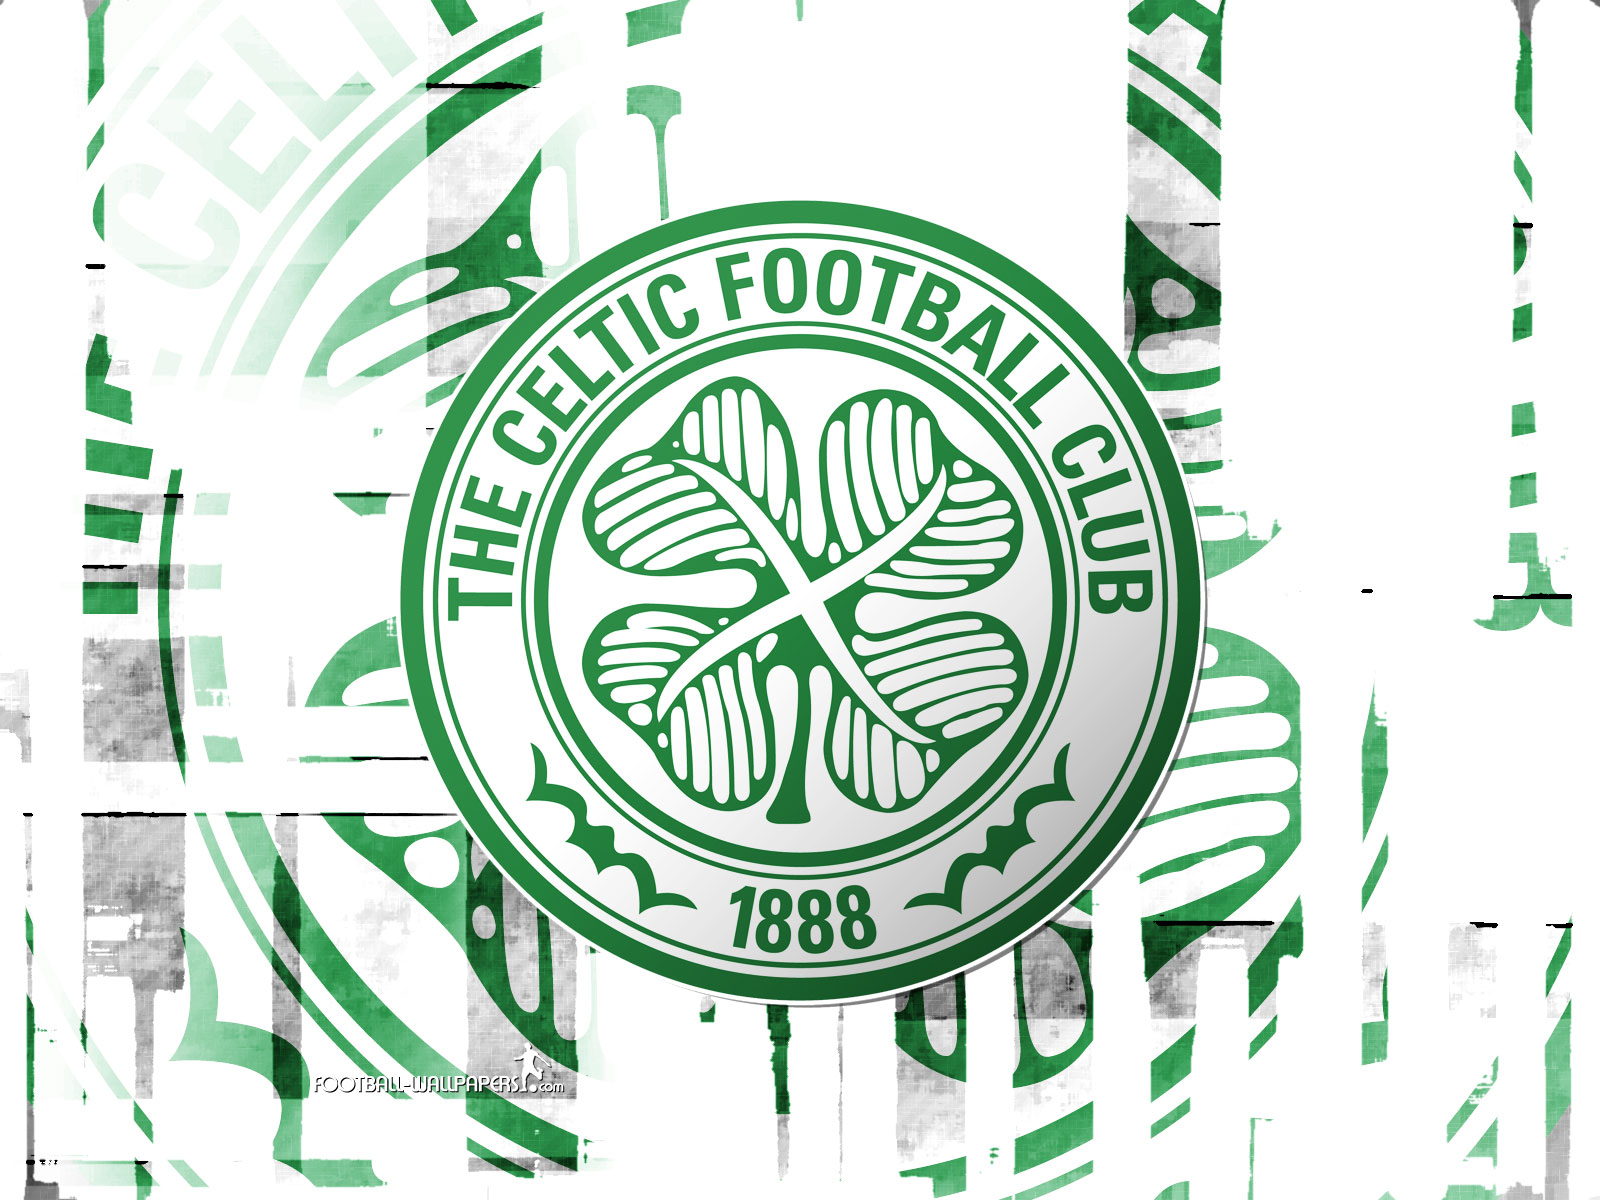 celtic - photo #6